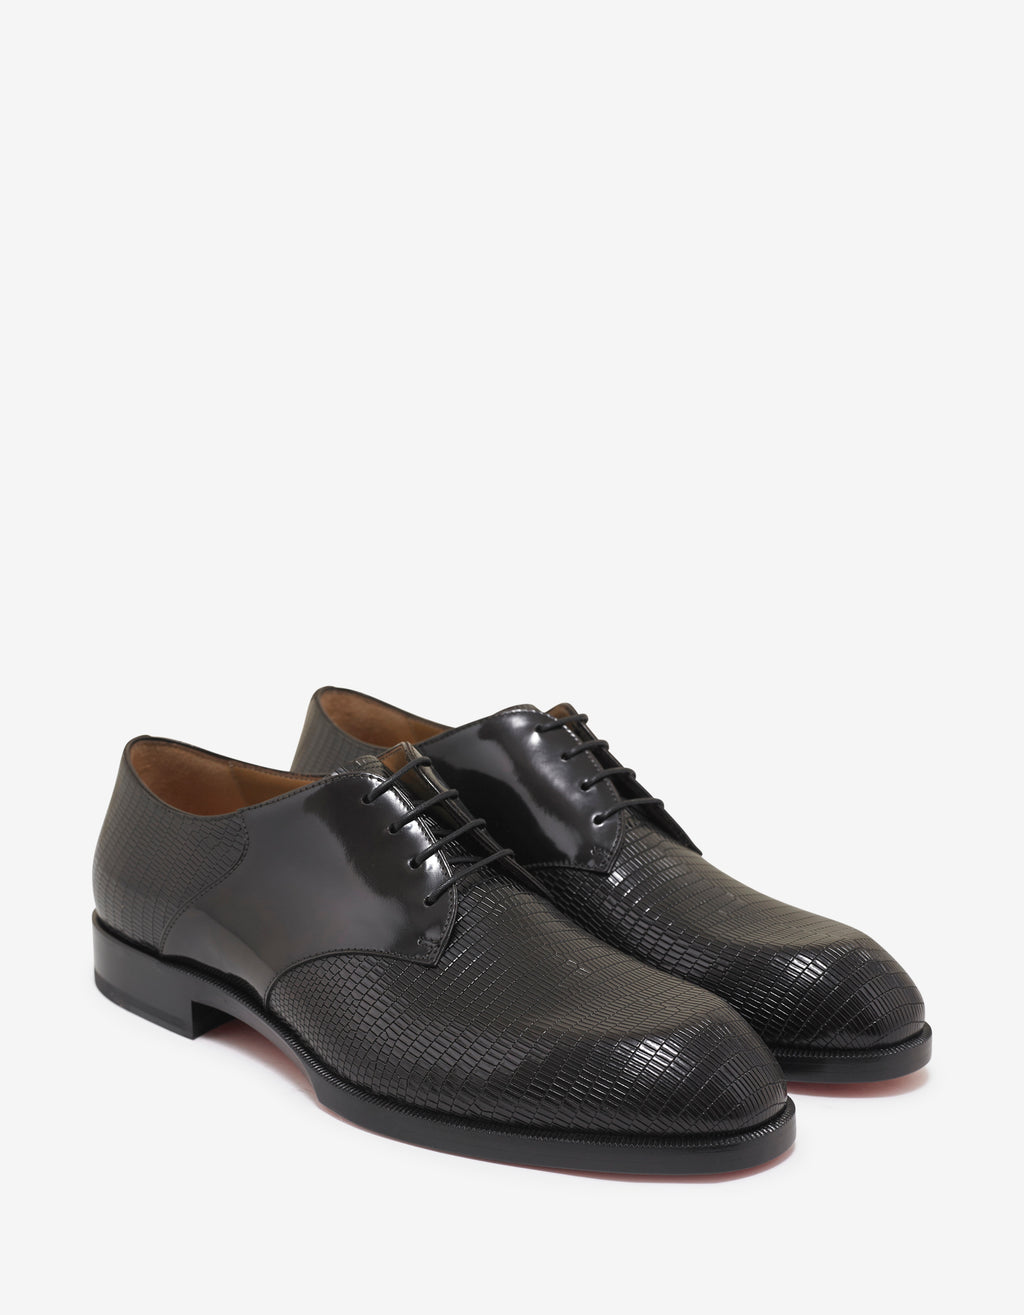 A Mon Homme Flat Iguana Embossed Derby Shoes